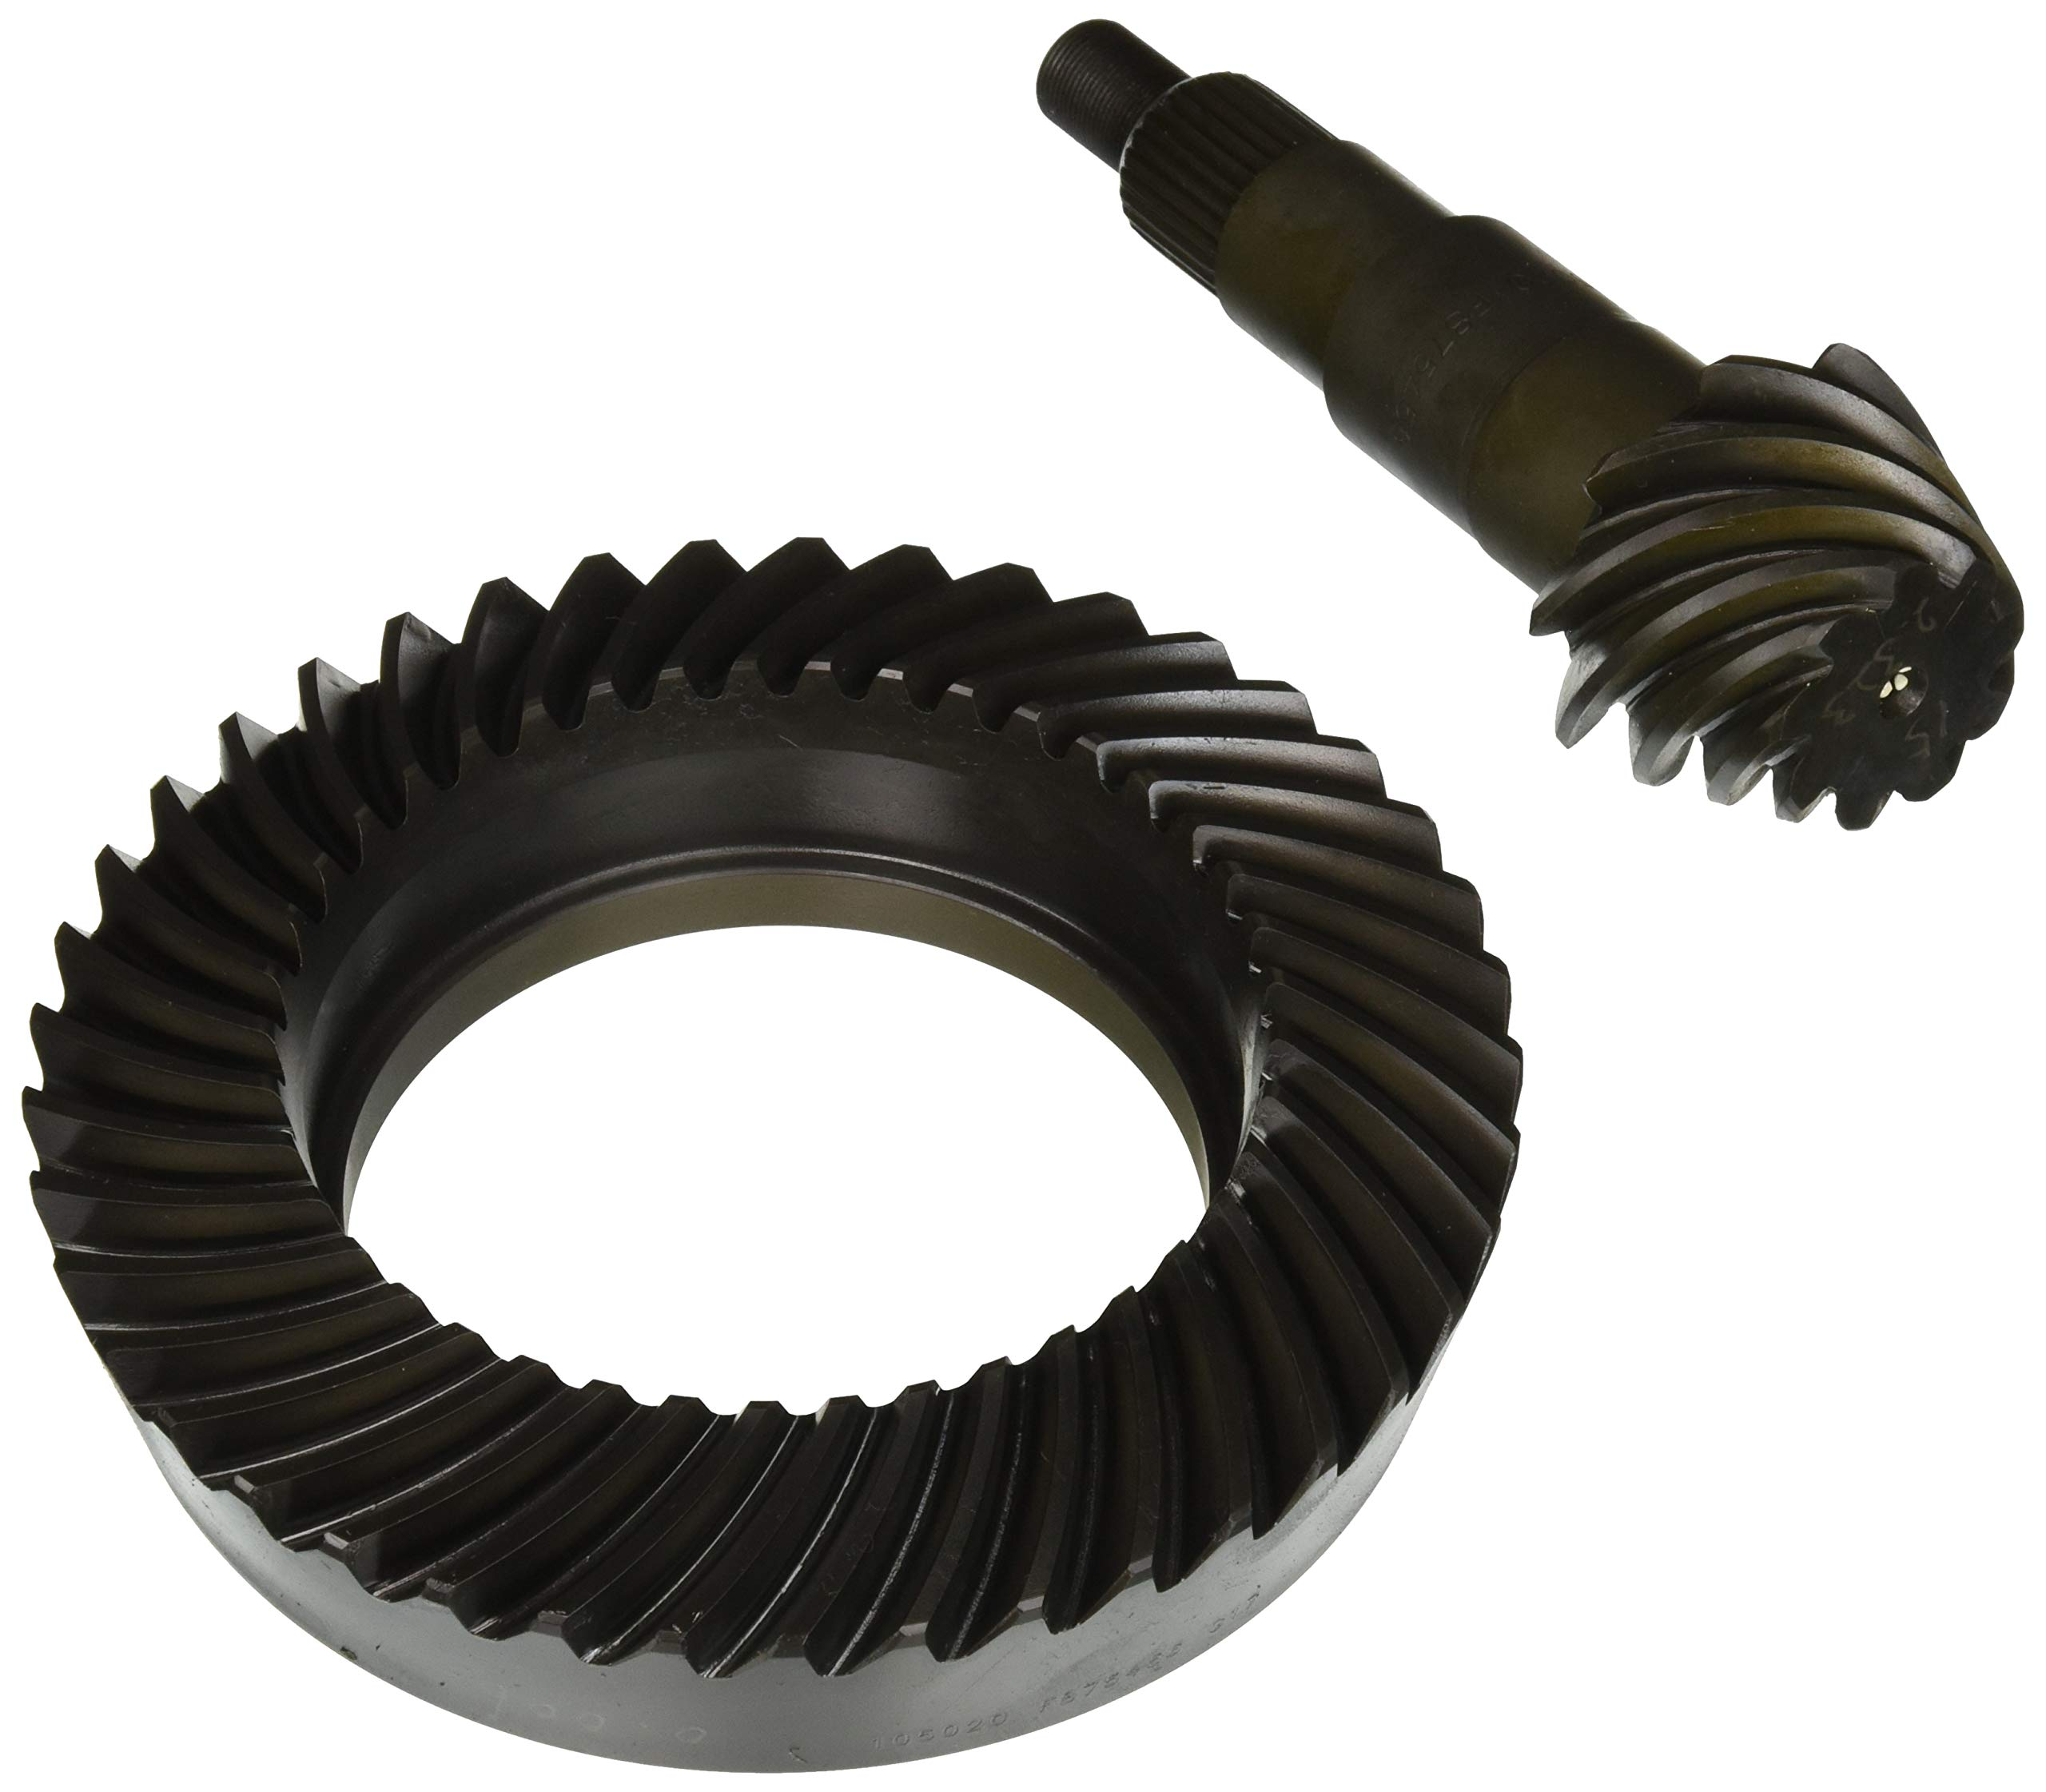 Motive Gear F875456 7.5'' Rear Ring and Pinion for Ford (4.56 Ratio) by Motive Gear